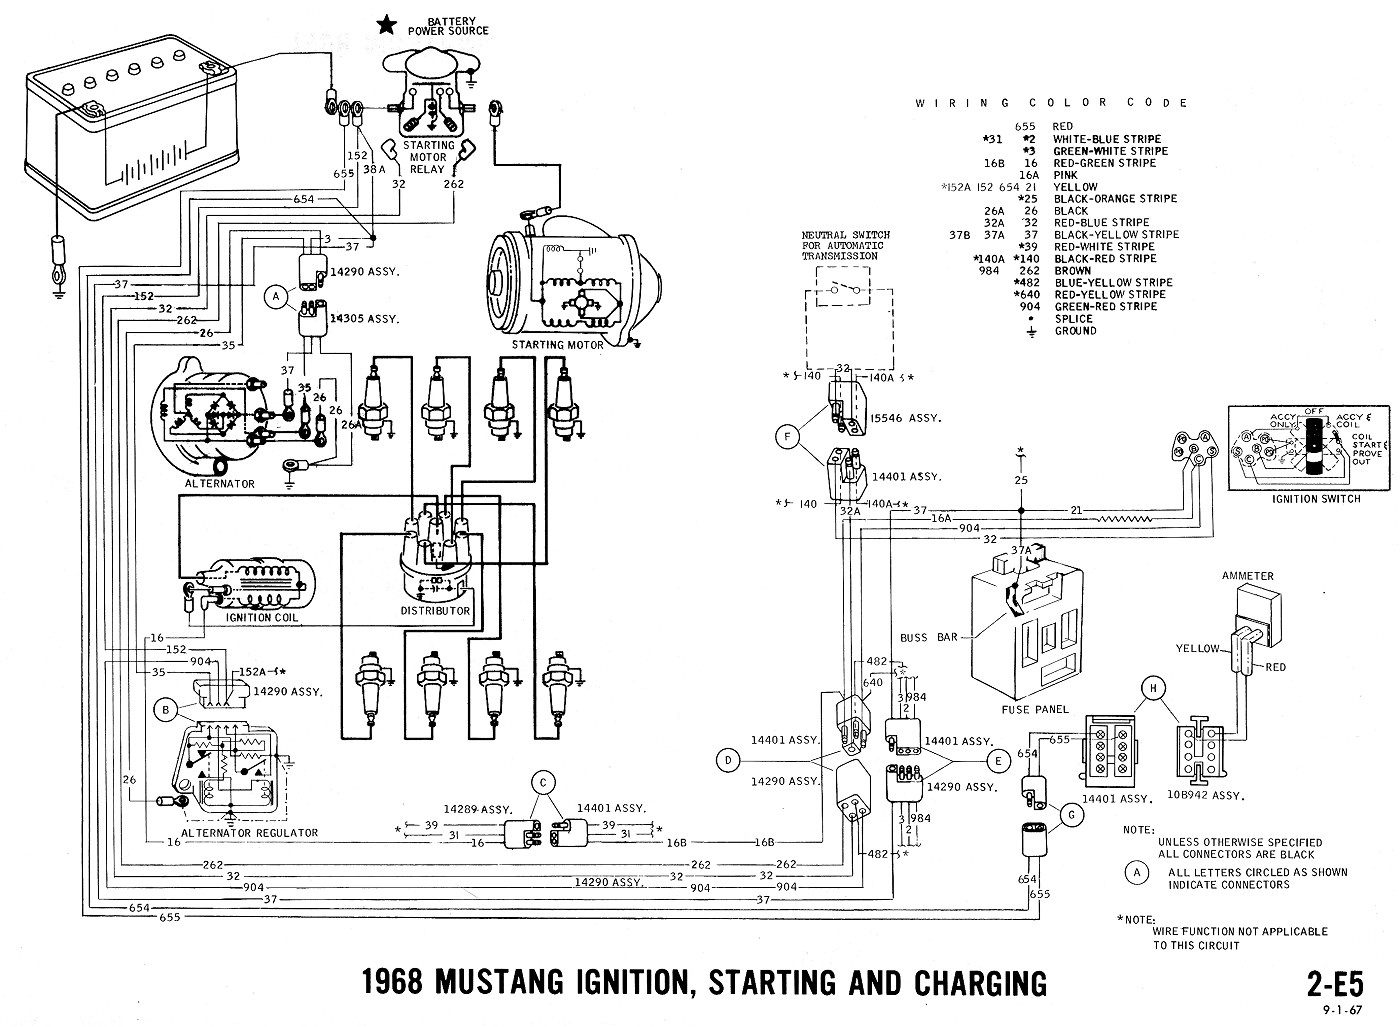 1968 mustang wiring diagrams evolving software rh peterfranza com 1979 Wiring Diagram in PDF Ford Truck Wiring Diagrams